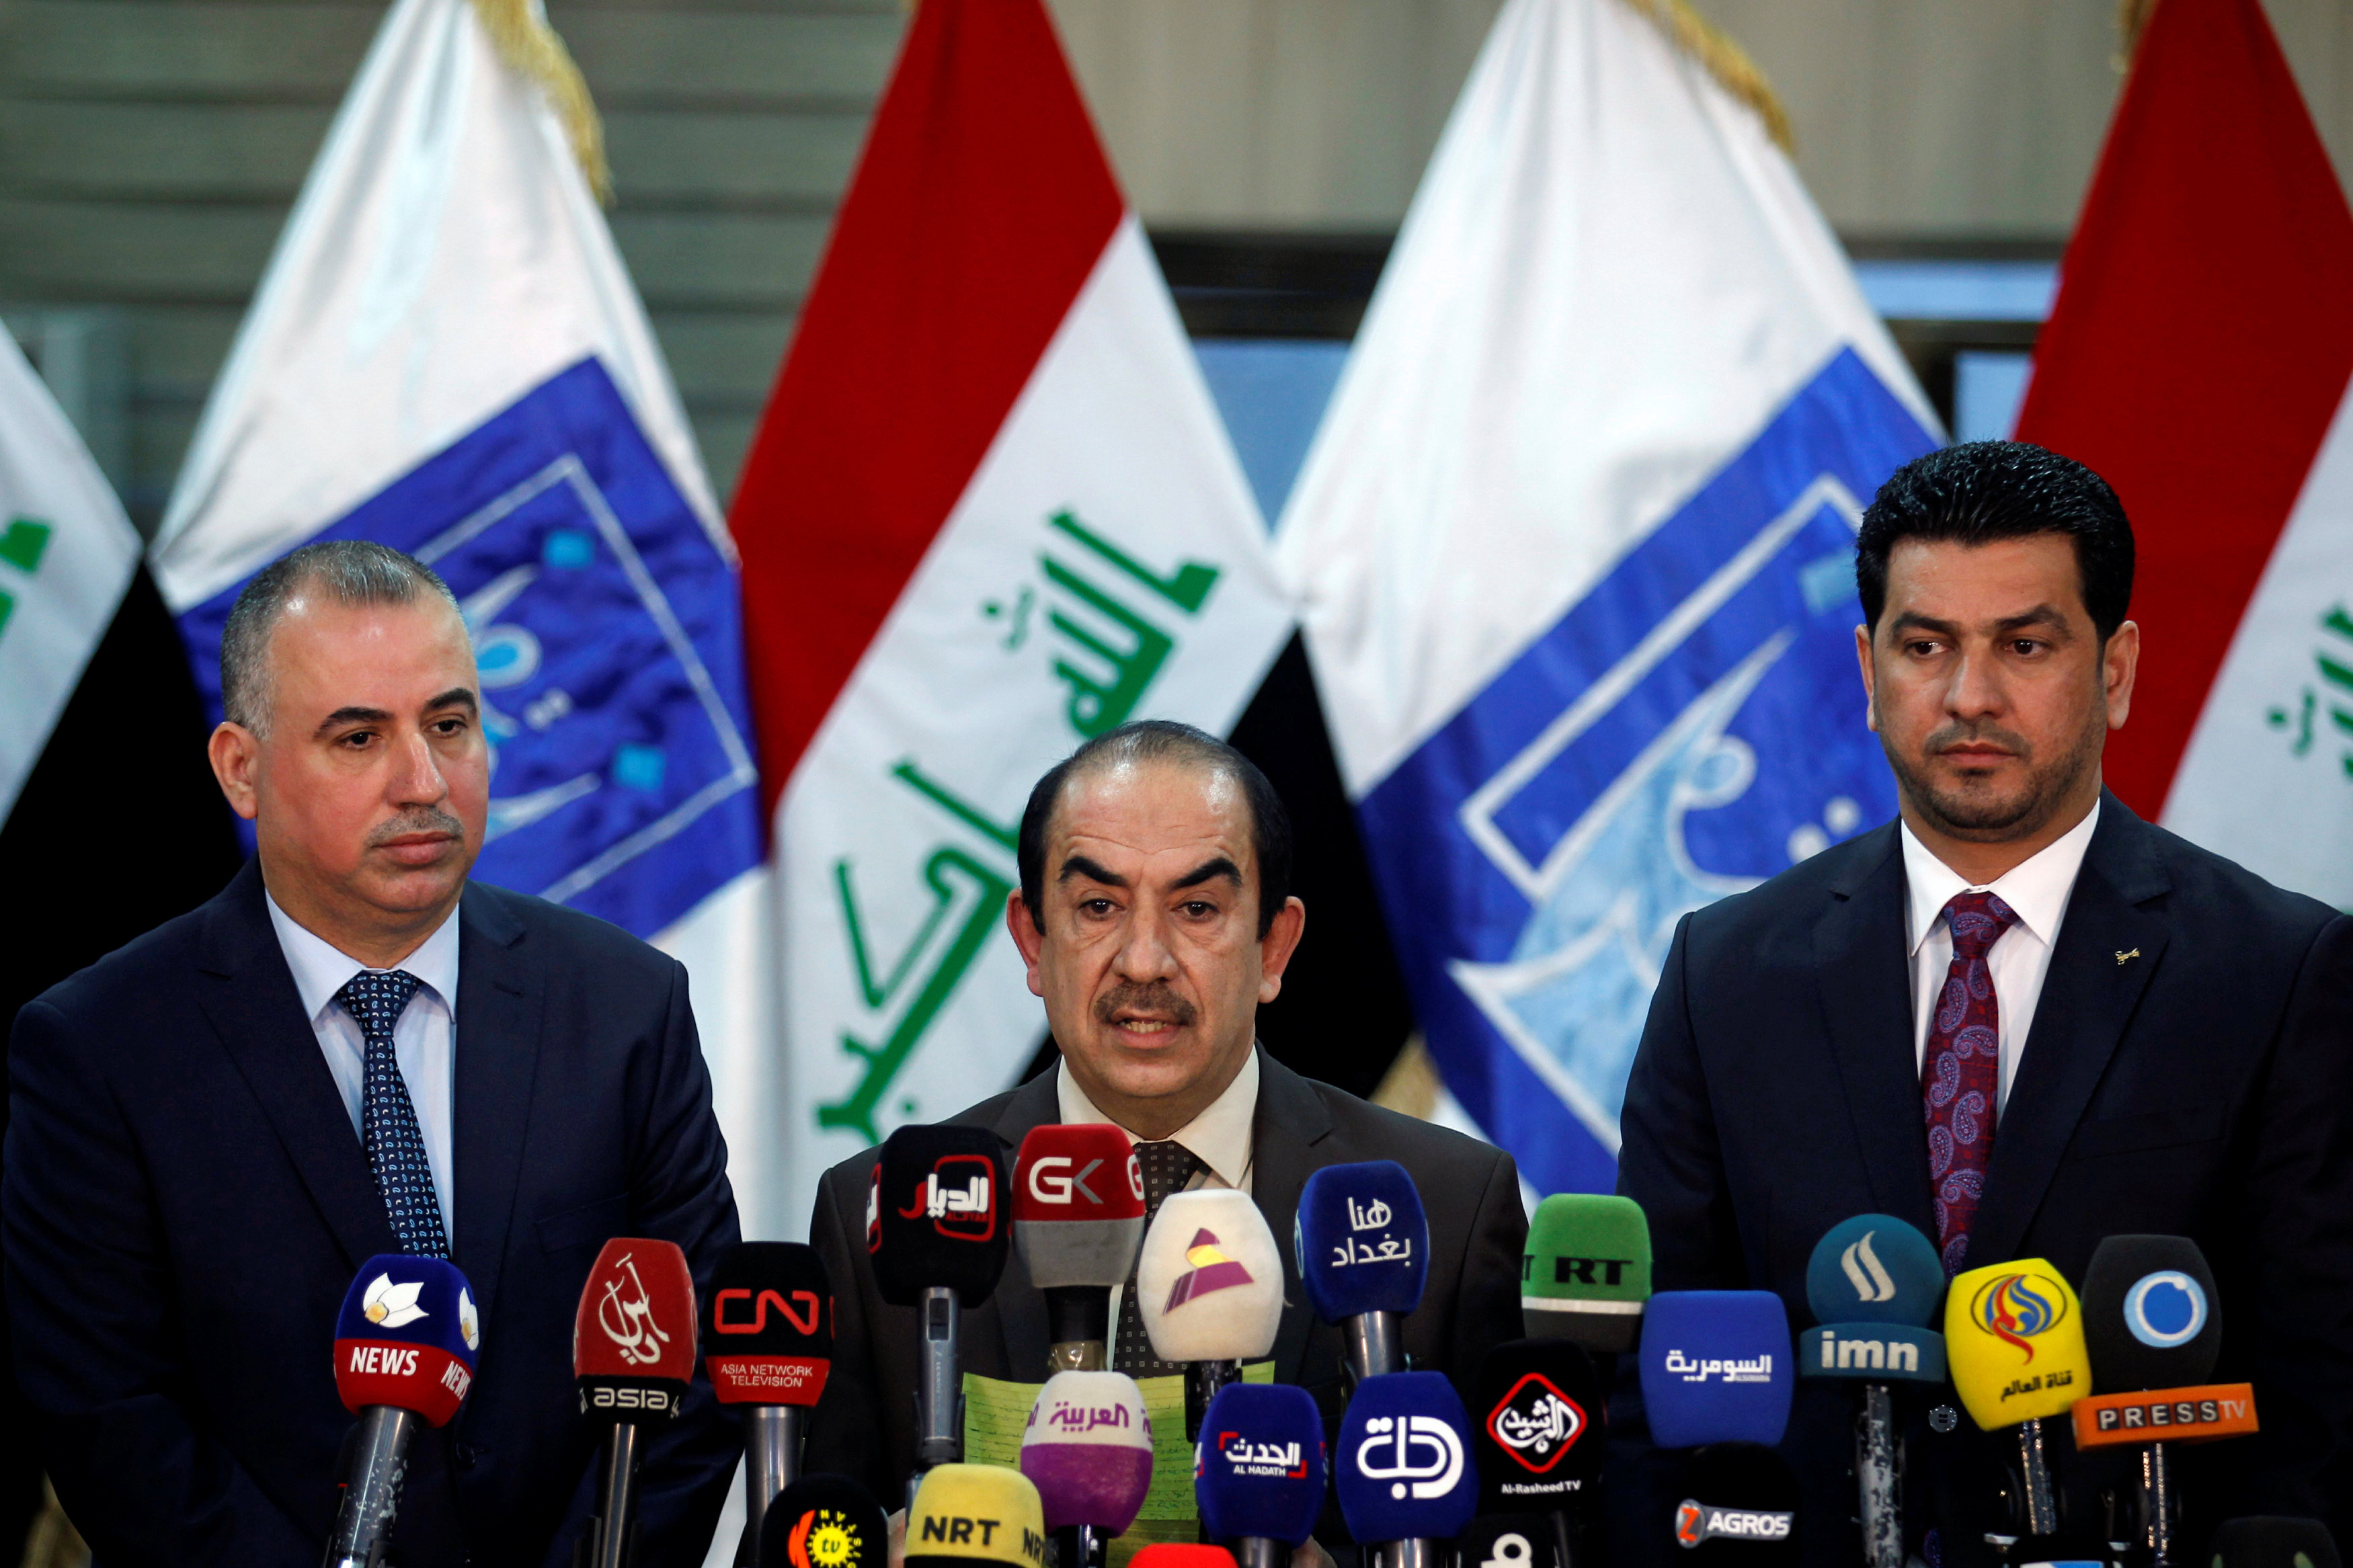 The head of Iraq's Independent Higher Election Commission Riyadh al-Badran speaks during a news conference in Baghdad, Iraq May 16, 2018. REUTERS/Khalid al Mousily